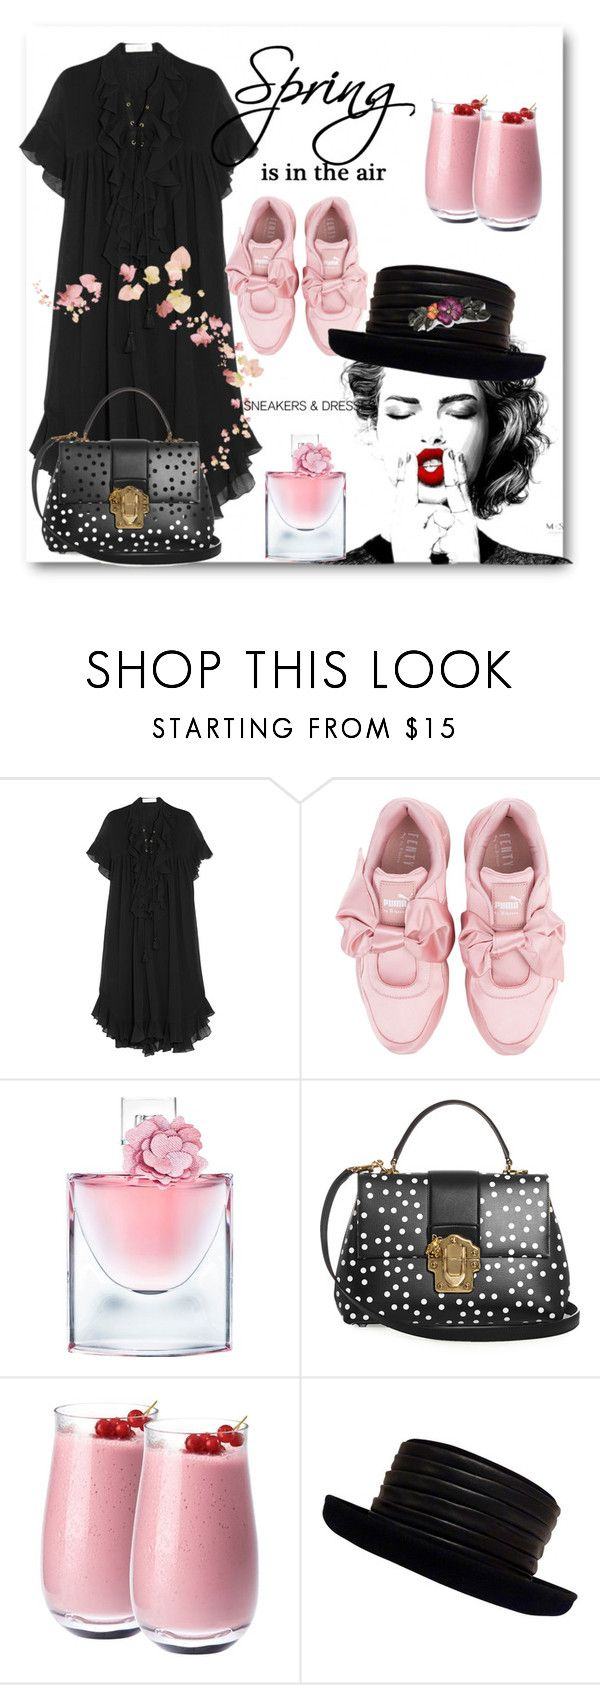 """""""Sneakers and dresses"""" by amaiba ❤ liked on Polyvore featuring Chloé, Puma, Lancôme, Dolce&Gabbana, Denby, Kokin and 1928"""